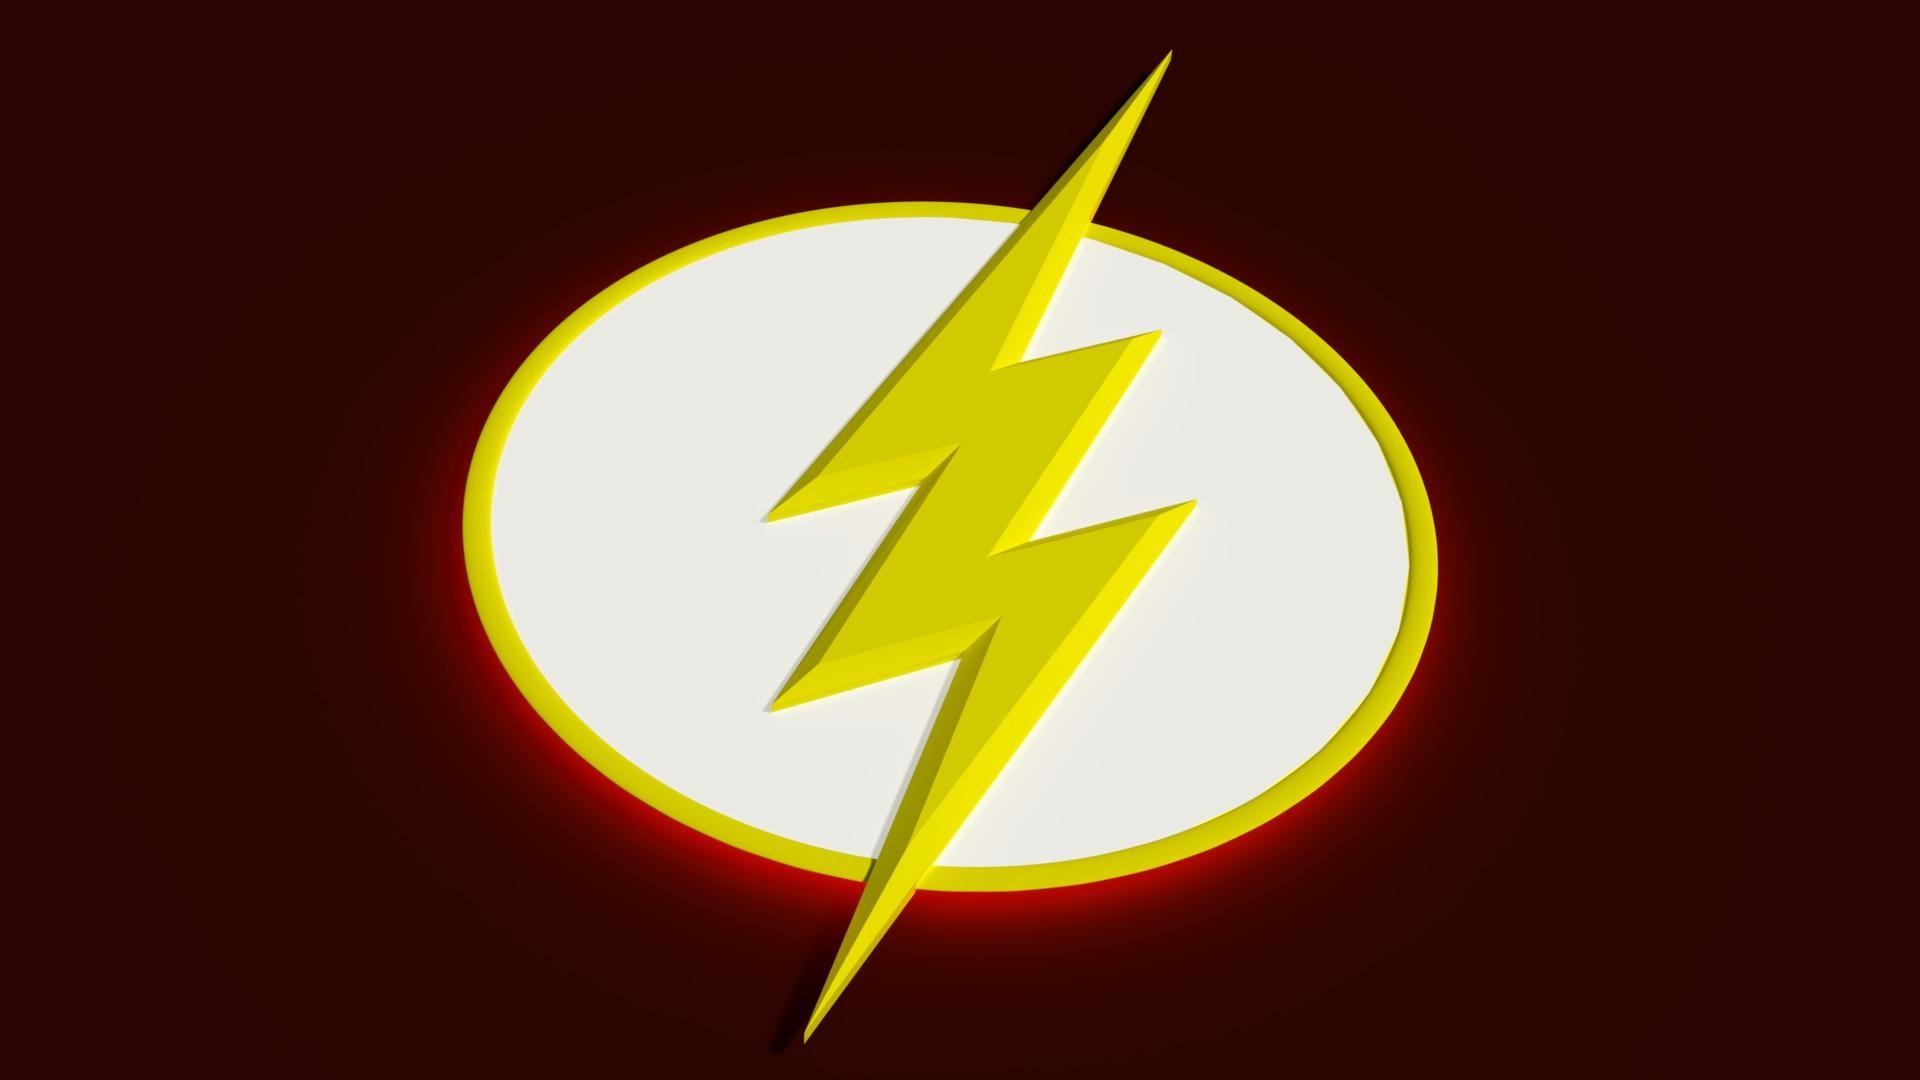 Flash wallpaper i made with …